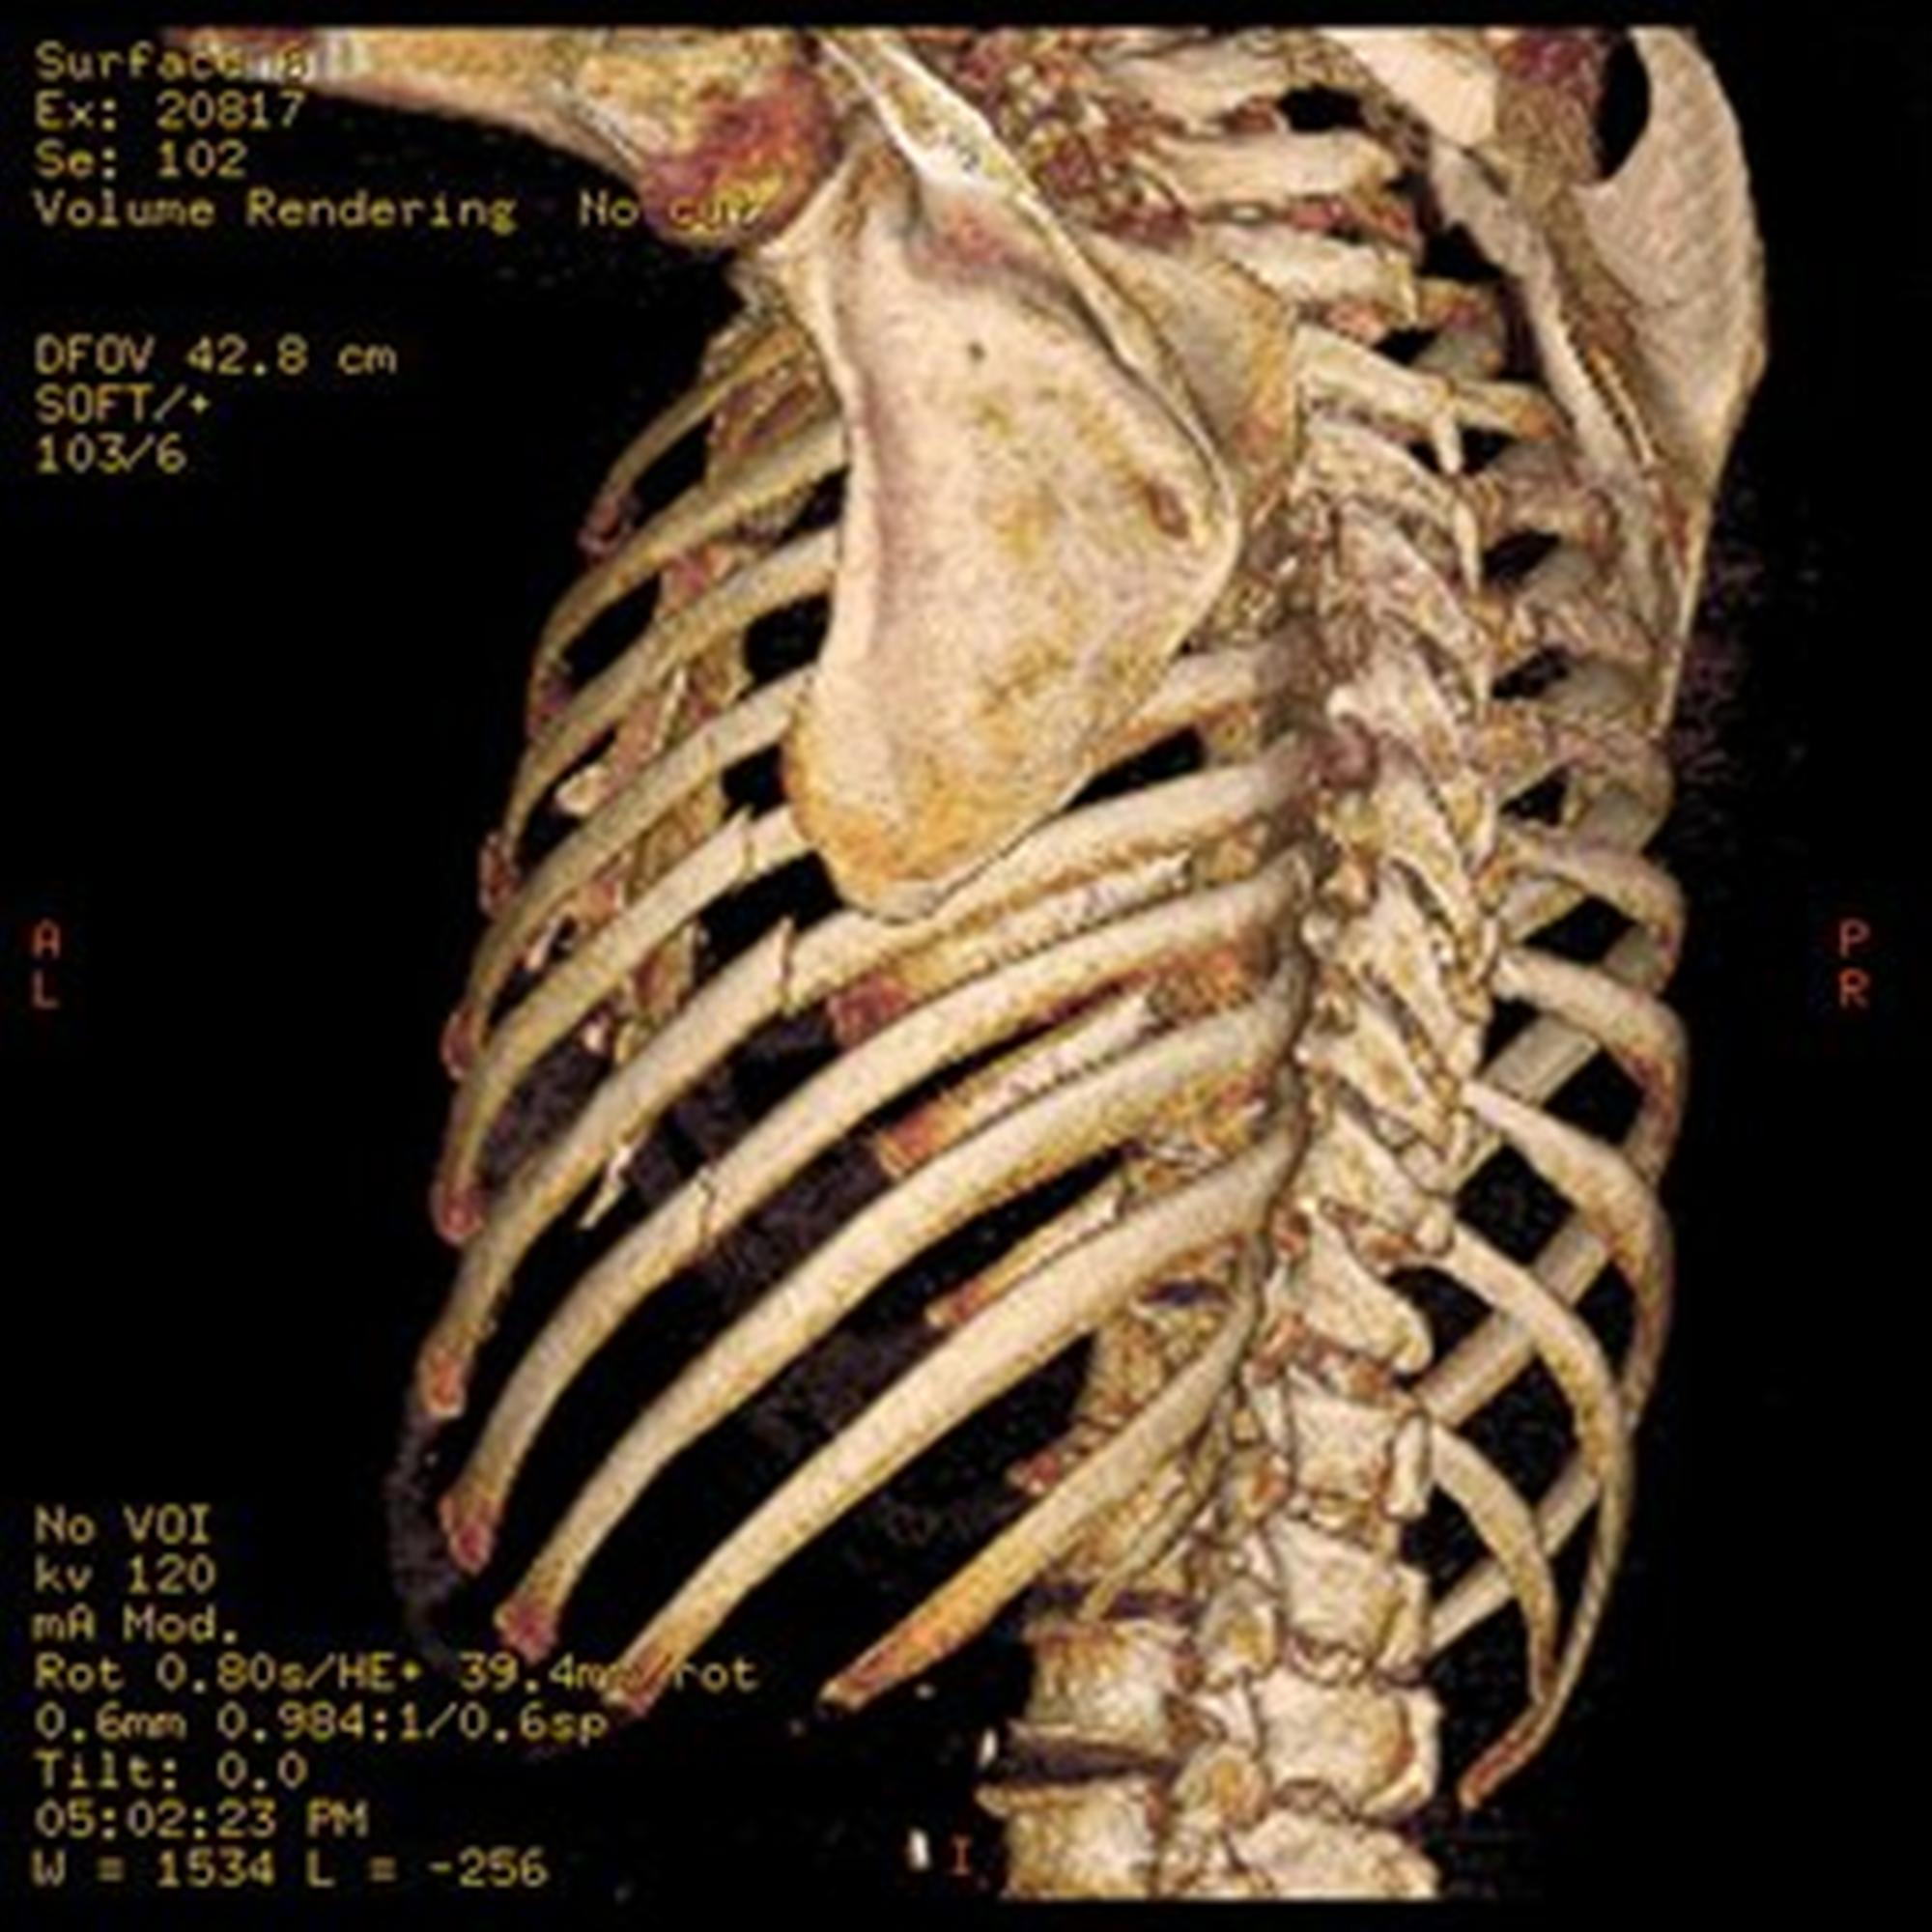 https://upload.orthobullets.com/topic/1060/images/3-d-reconstruction-of-fractured-ribs-before-surgery_1.jpg